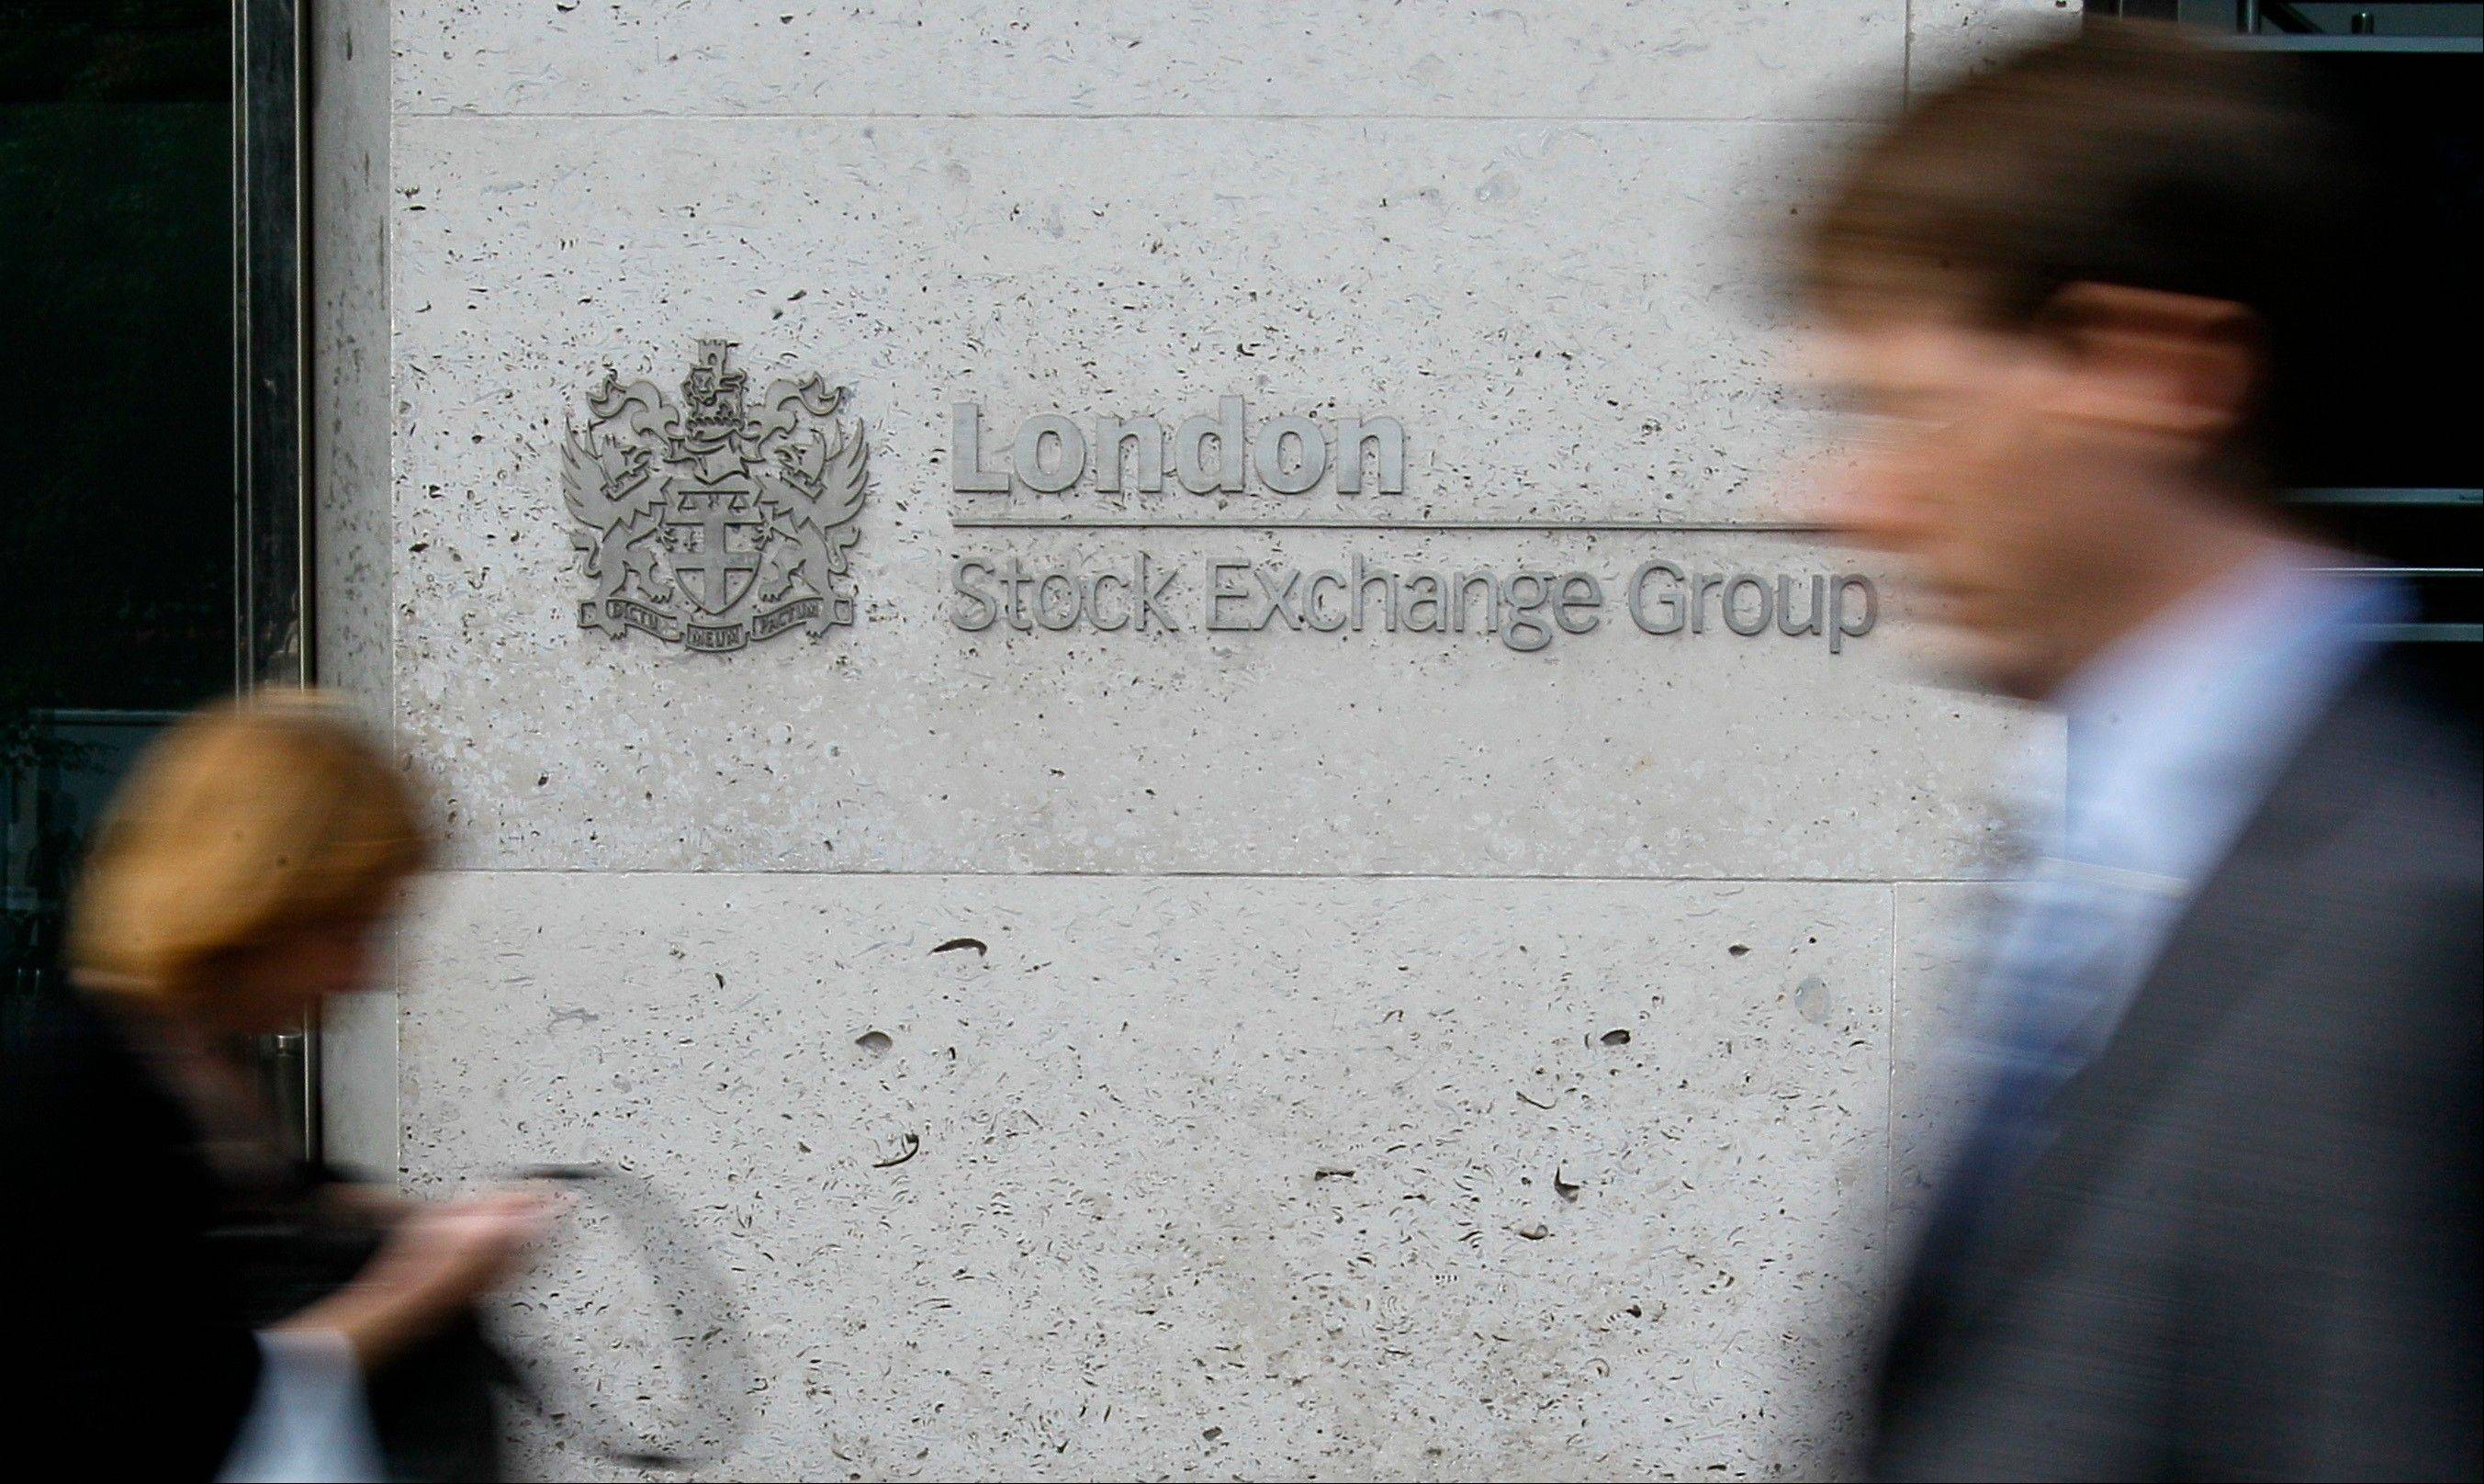 Pedestrians pass the London Stock Exchange in London, Monday, Aug. 8, 2011. Spanish and Italian stocks led European markets higher Monday as investors breathed a sigh of relief that the European Central Bank would buy the two countries' bonds in order to lower their borrowing costs.